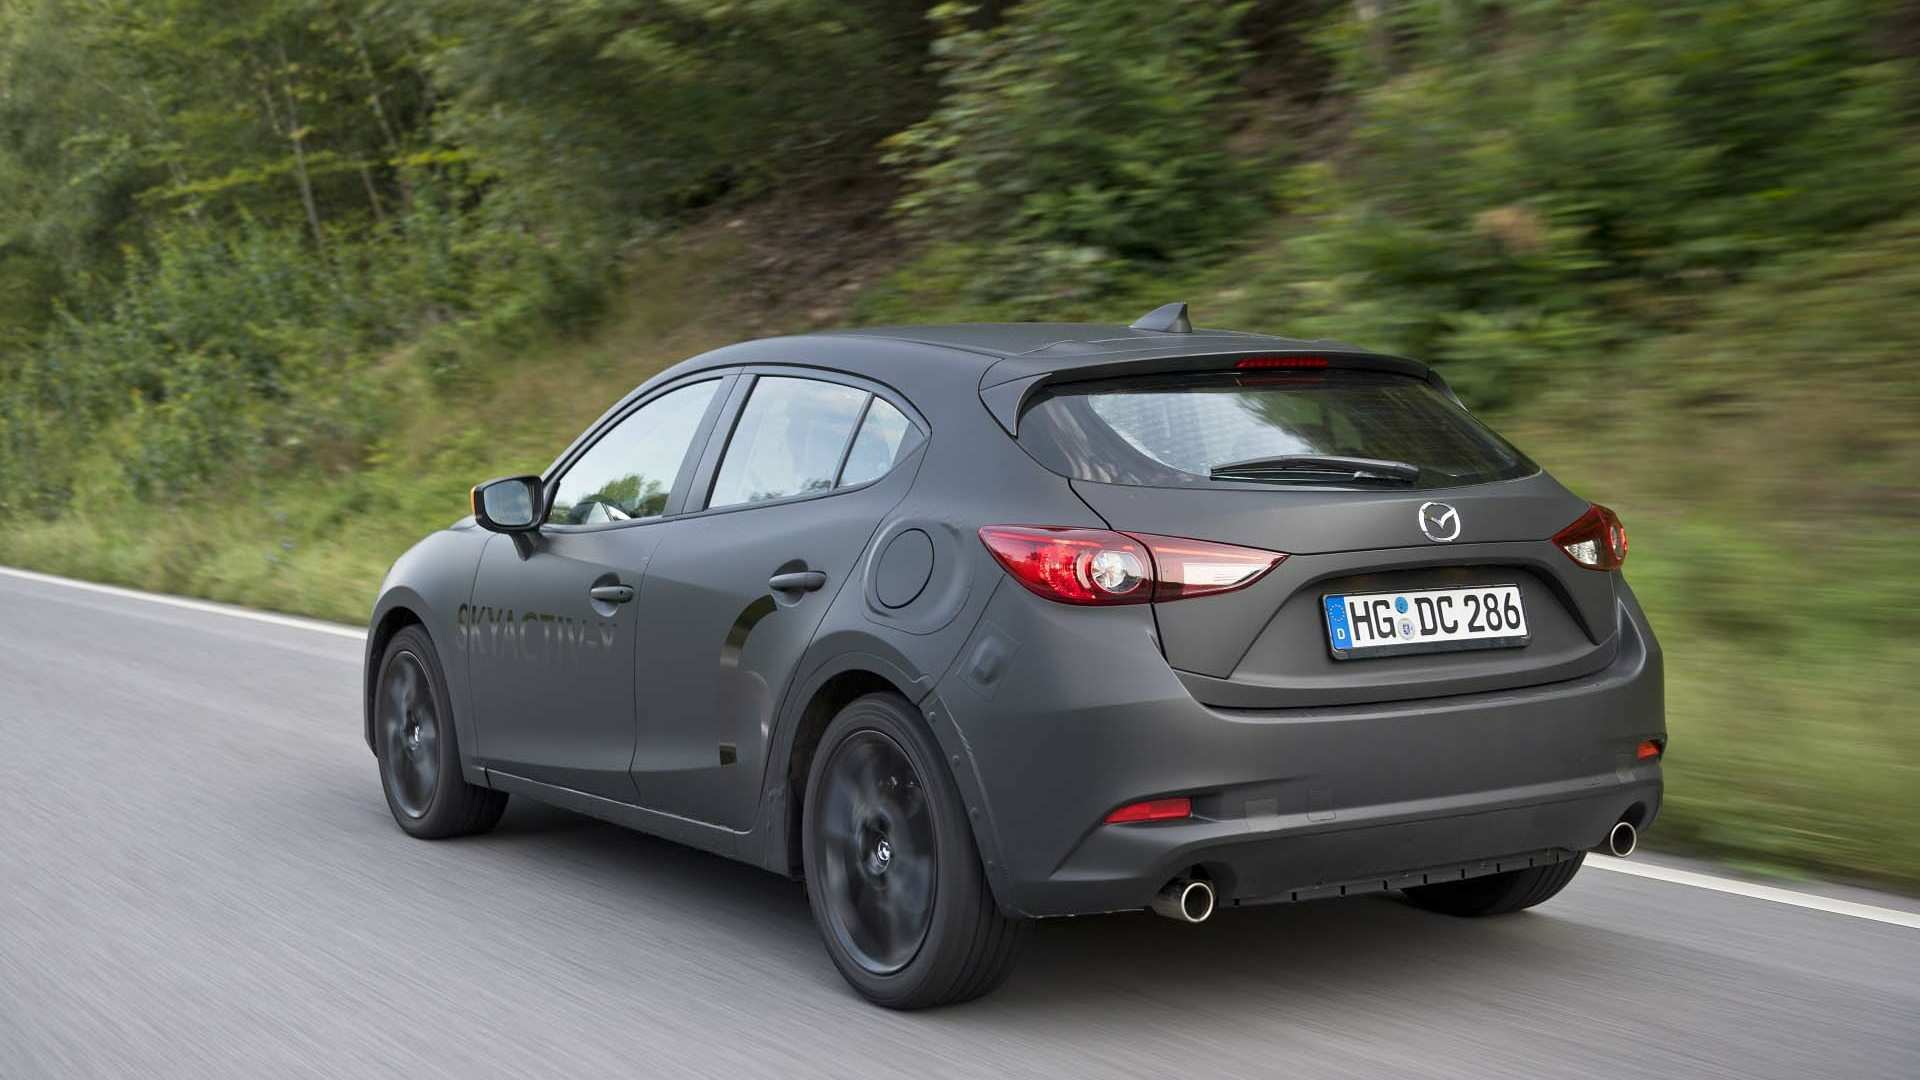 70 All New 2020 Mazdaspeed 3 Price And Release Date